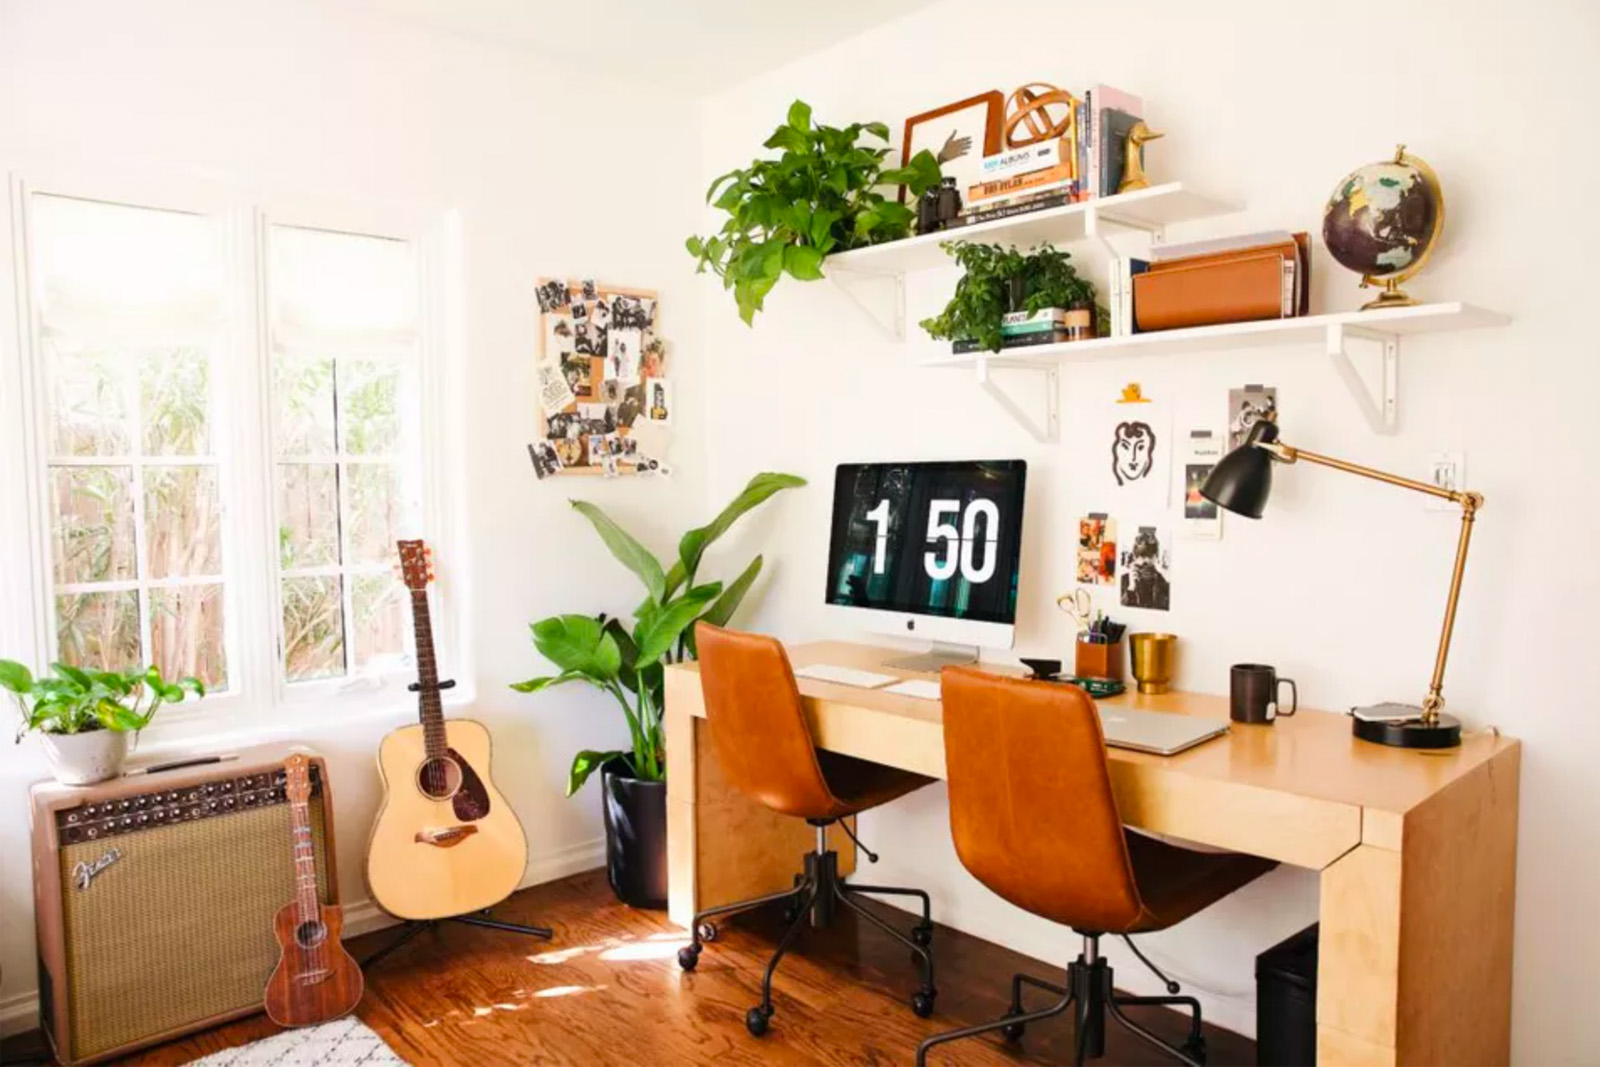 Cherie-Barber_Renovating-For-Profit_Covid-Home-Trends-Work